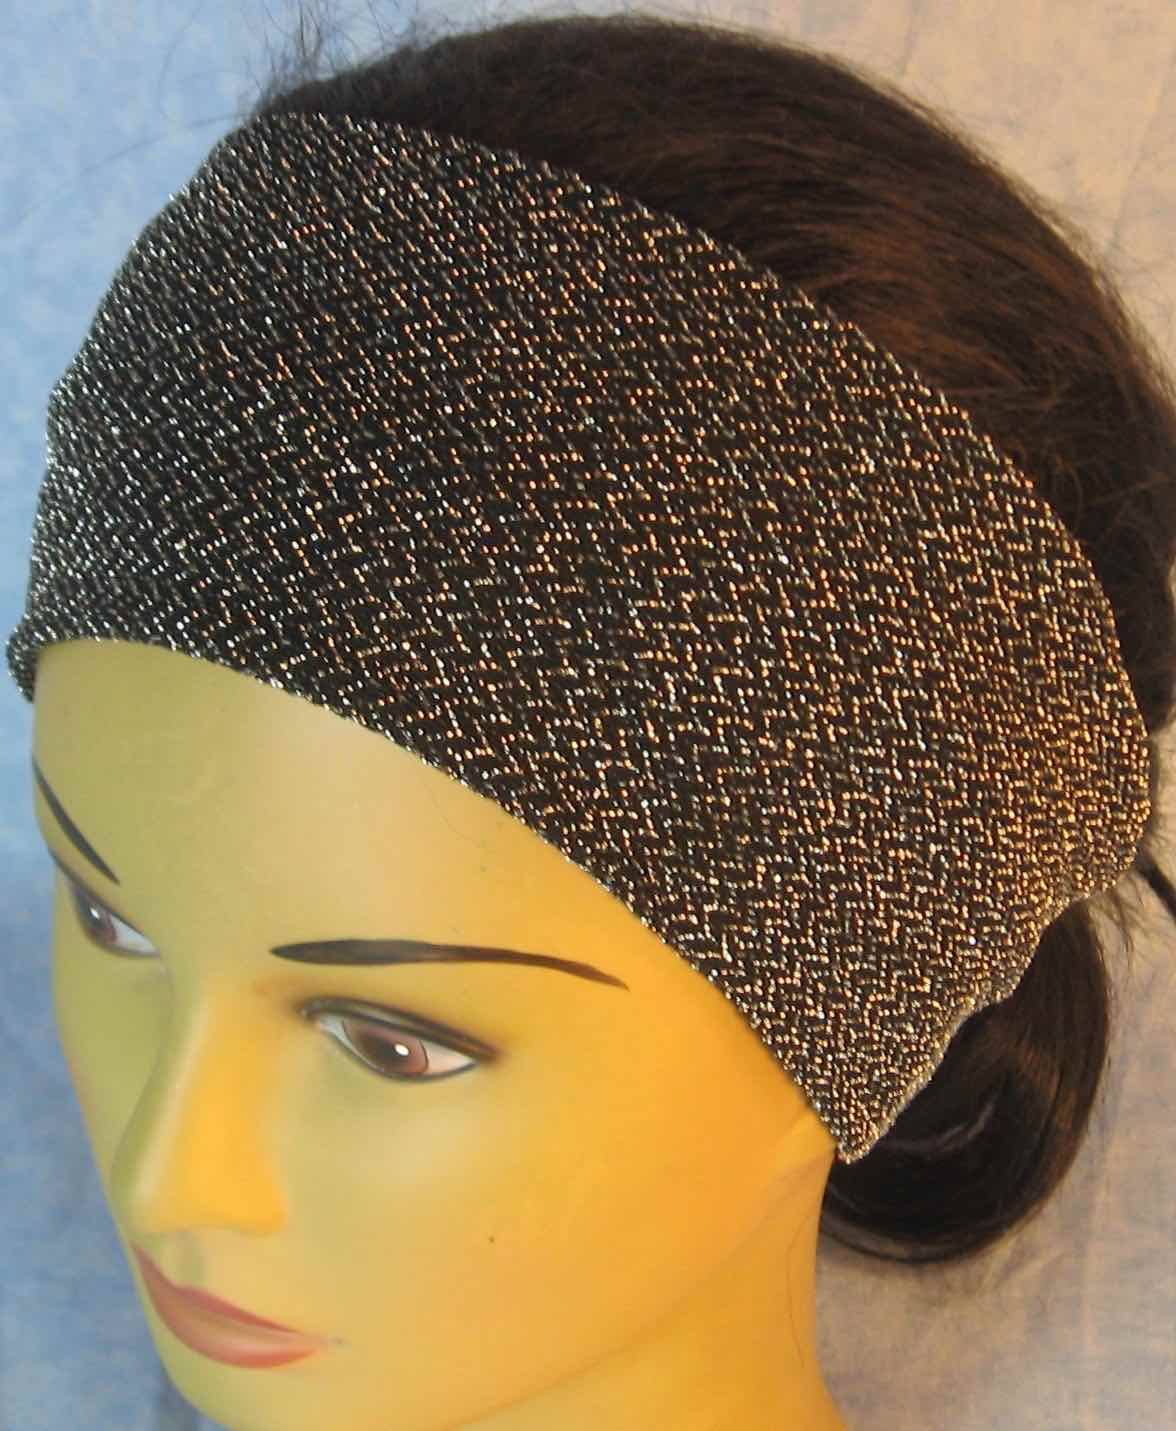 Headband-Black with Silver V's Knit-Adult M